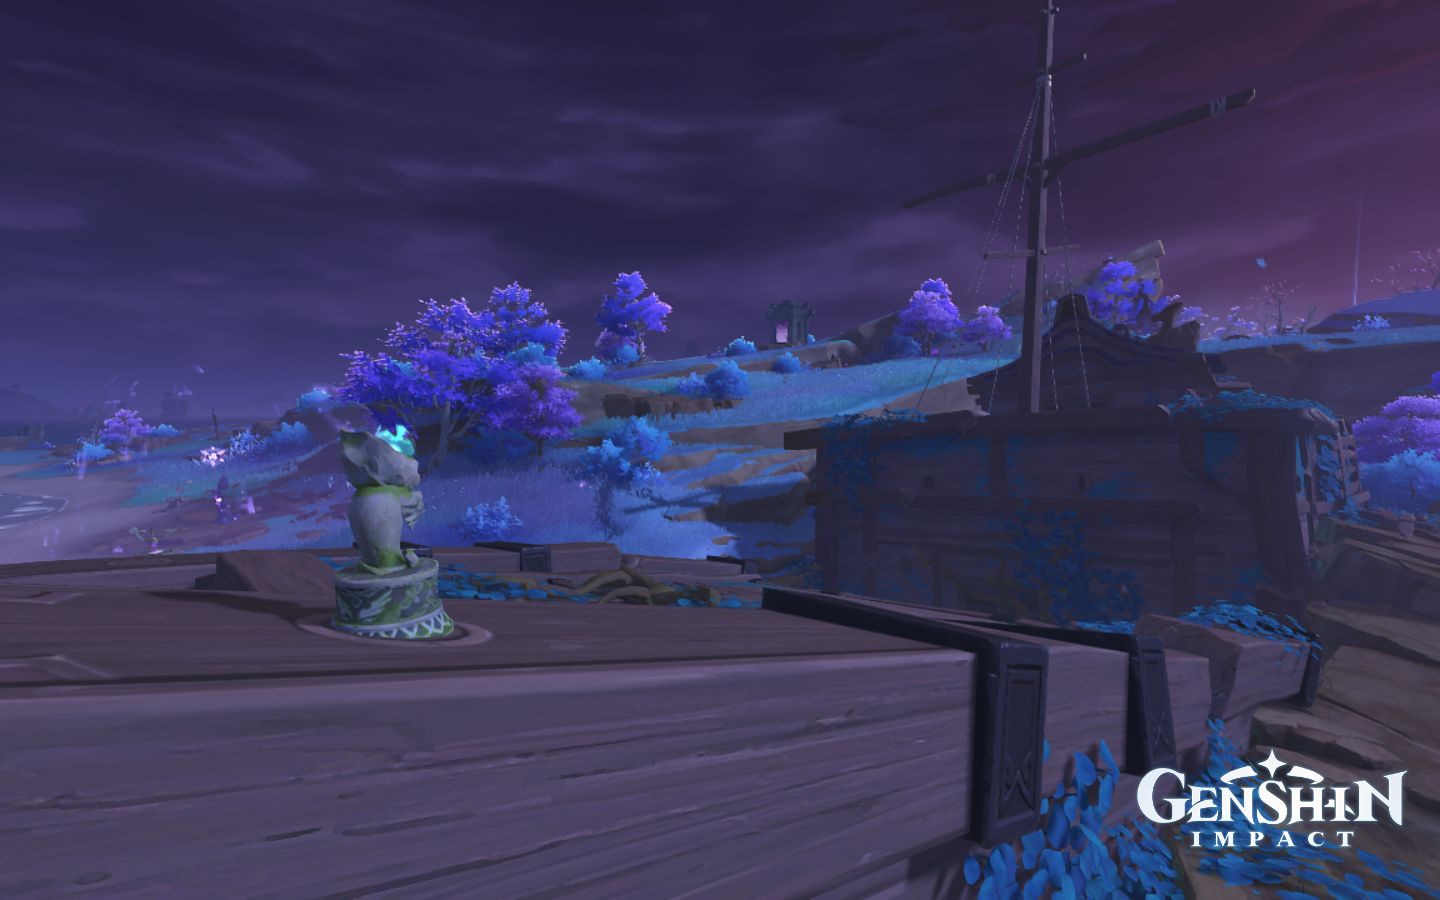 A stranded deserted ship in Genshin Impact with a purple hue on it